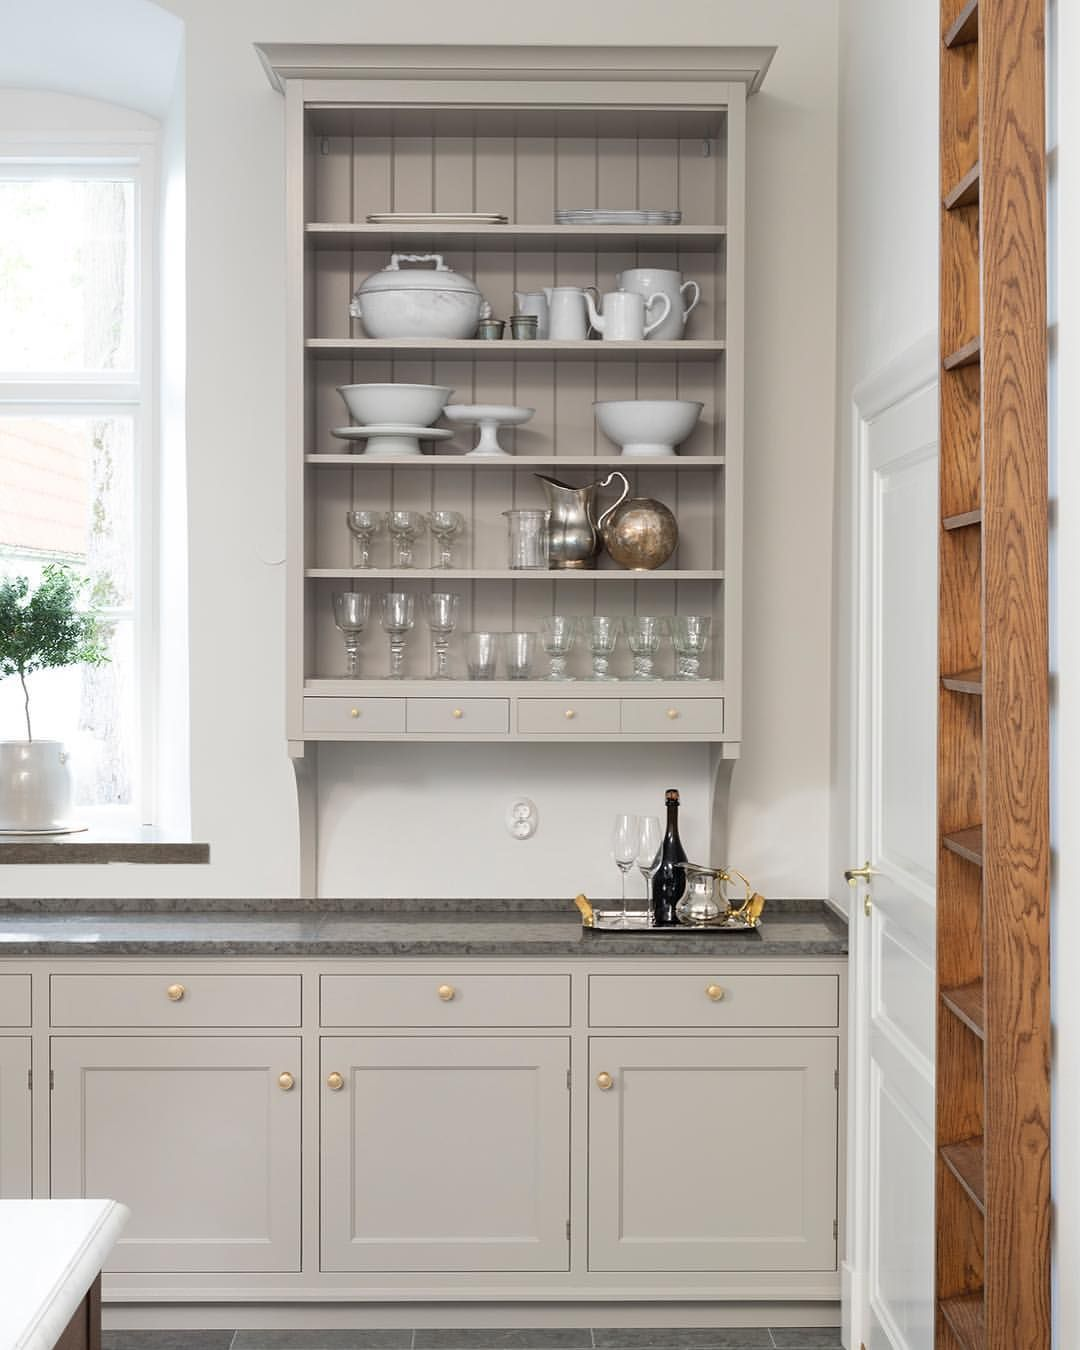 Kvanum Kok Ab Kvanumofficial On Instagram High Wall Mounted Cupboard For China And A Ladder In Antique Home Kitchens Kitchen Remodel Kitchen Inspirations